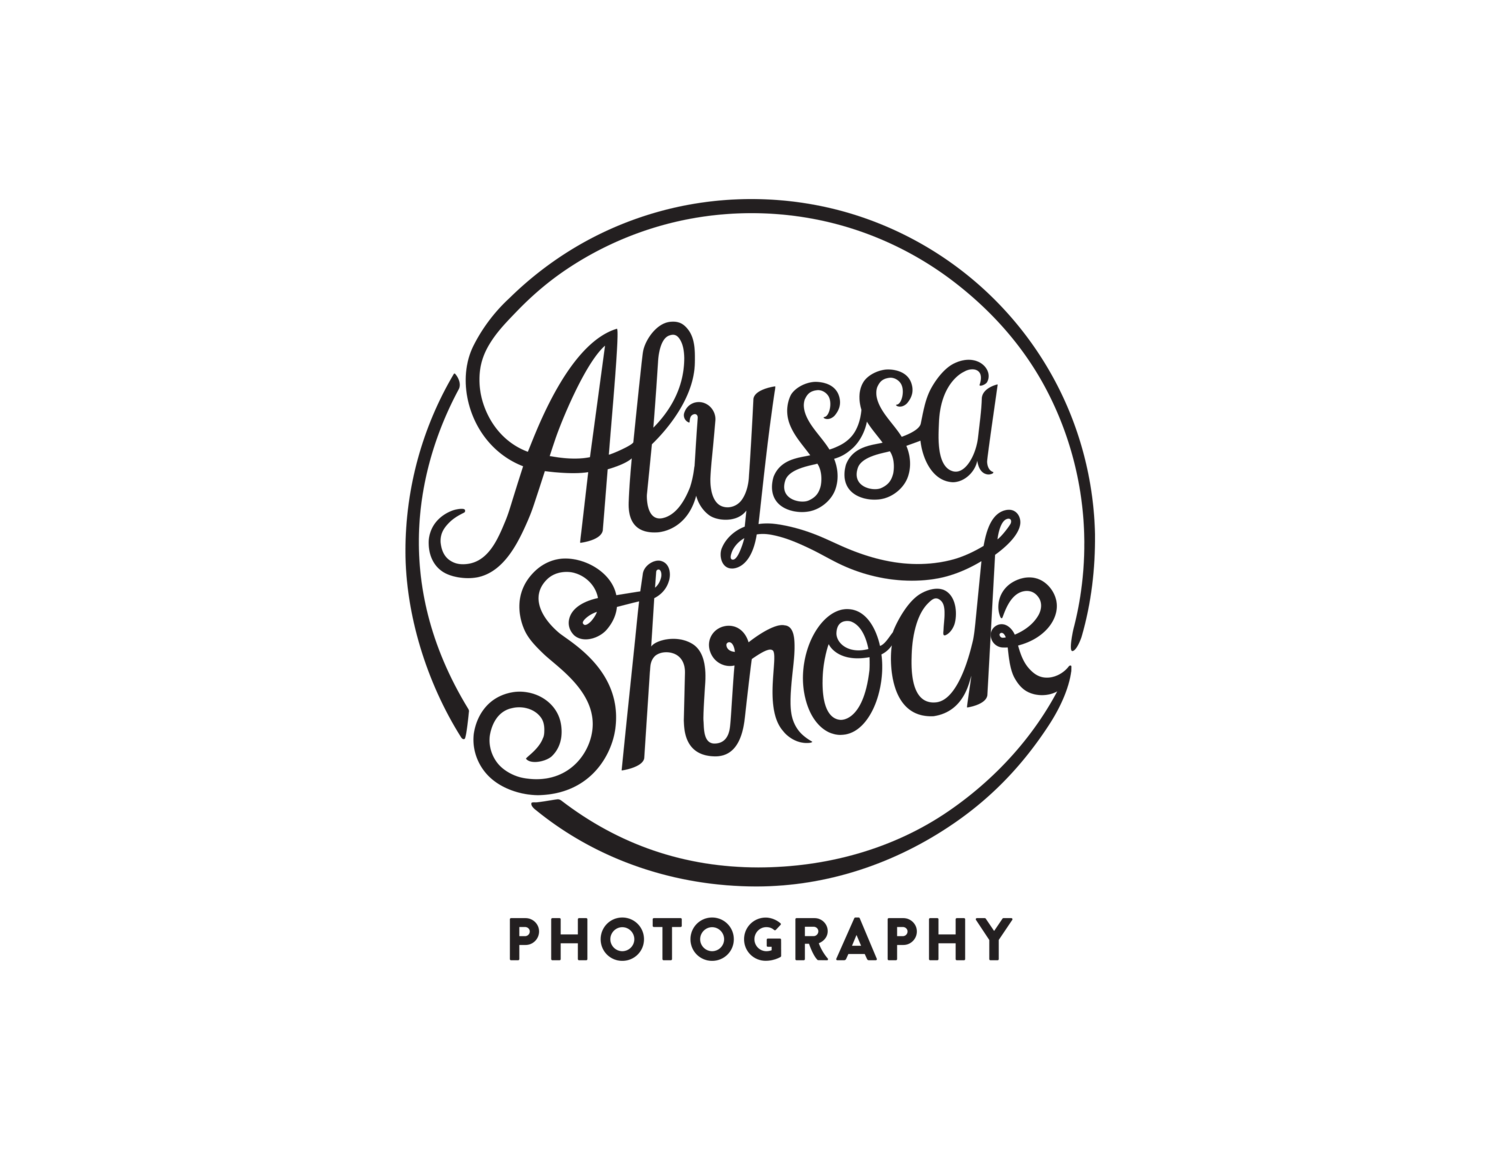 Alyssa Shrock Photography